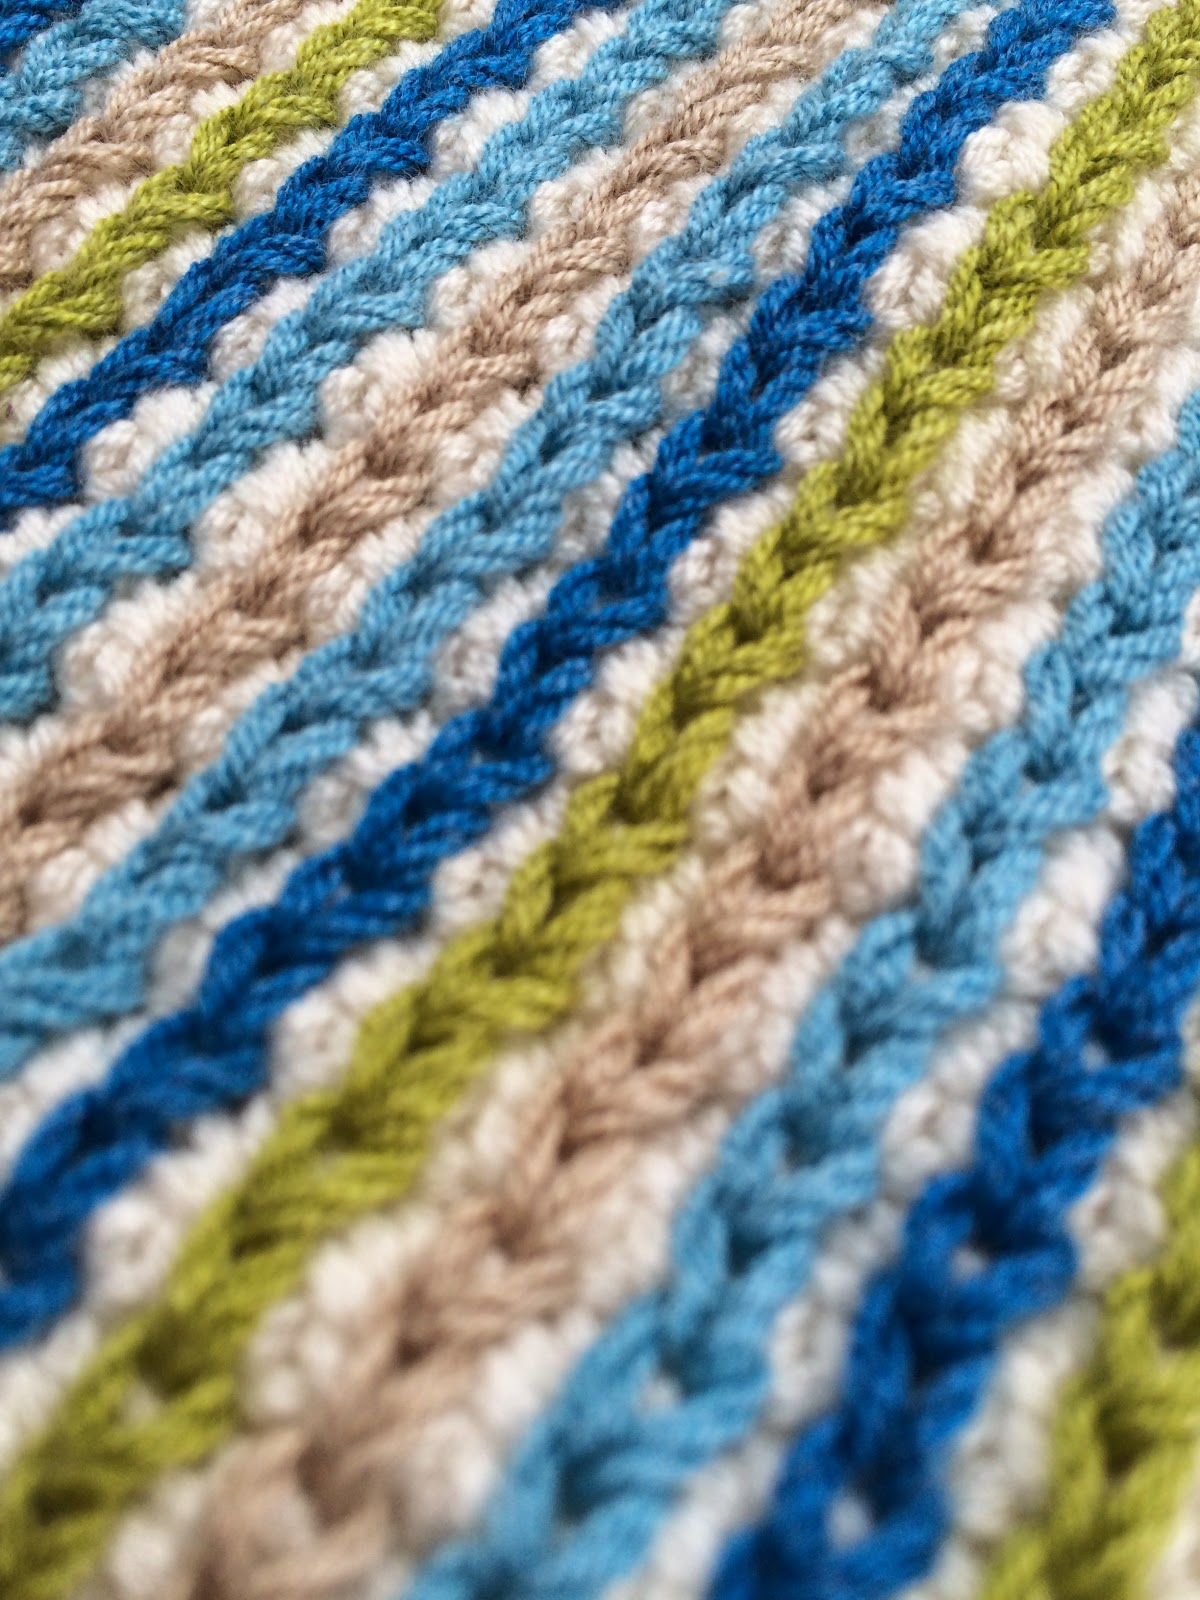 Close up of crochet fabric with surface slip stitches in tan, green, and two shades of blue.